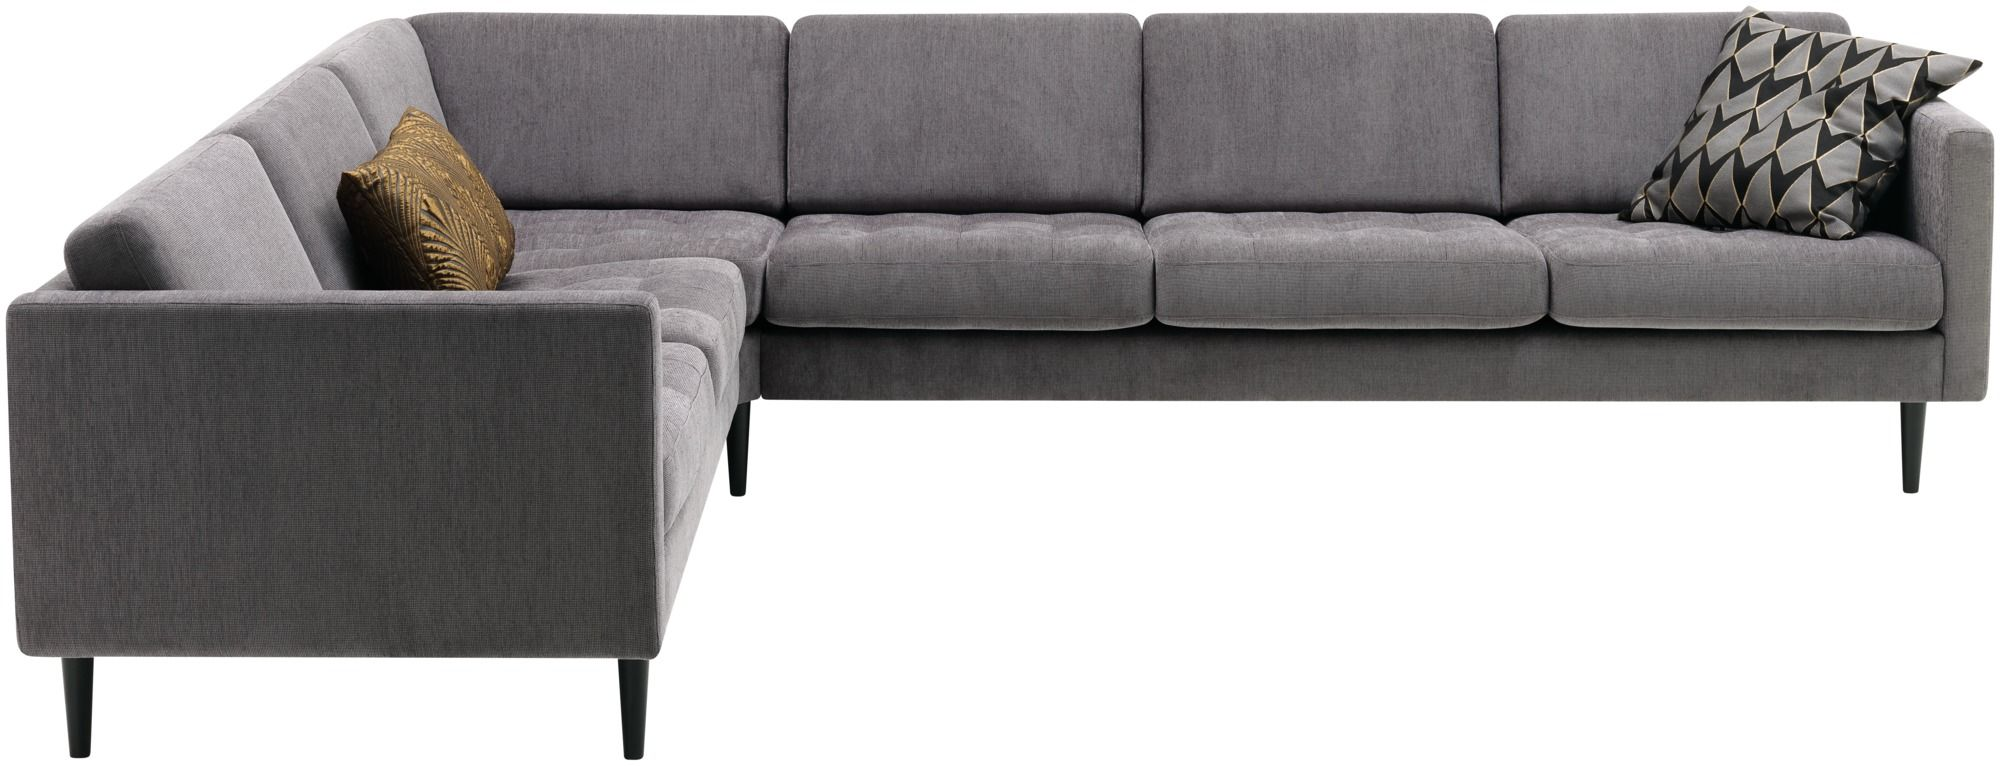 Sofa Tables New Furniture Designs BoConcept Modern Furniture Sydney Australia